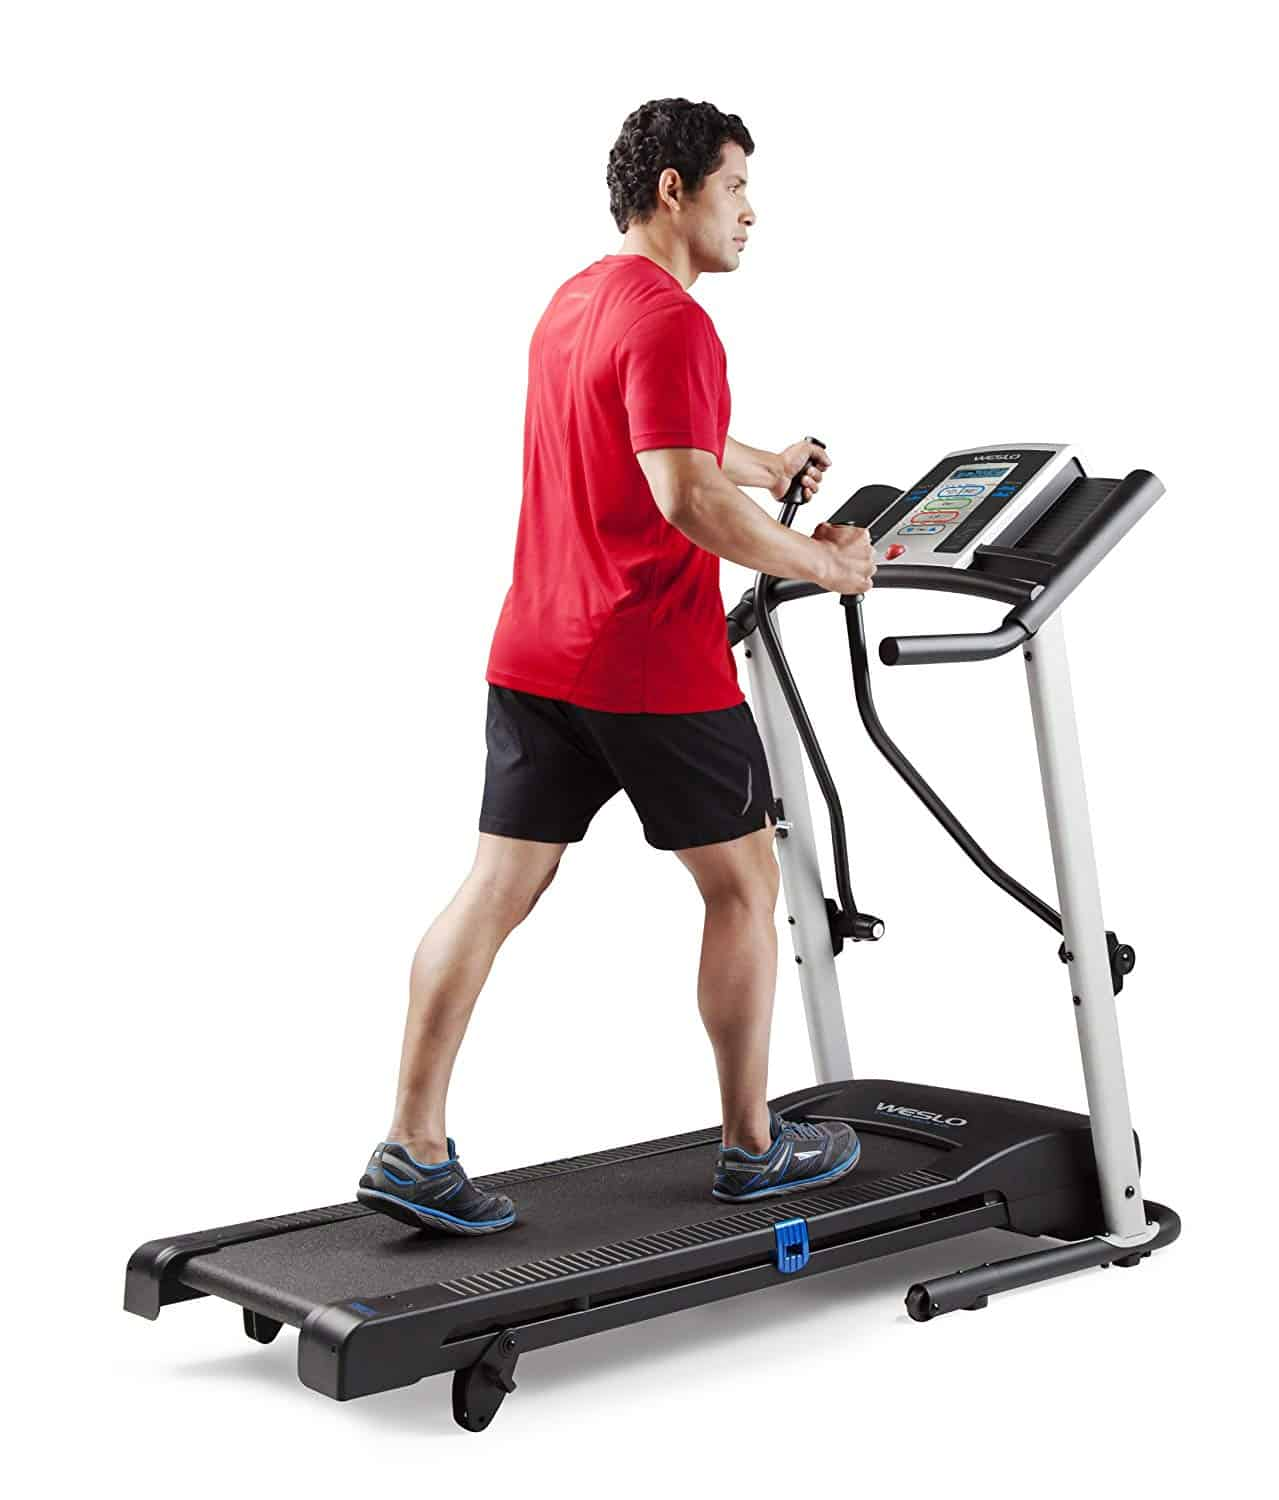 Treadmill exercise using Weslo Crosswalk 5.2T